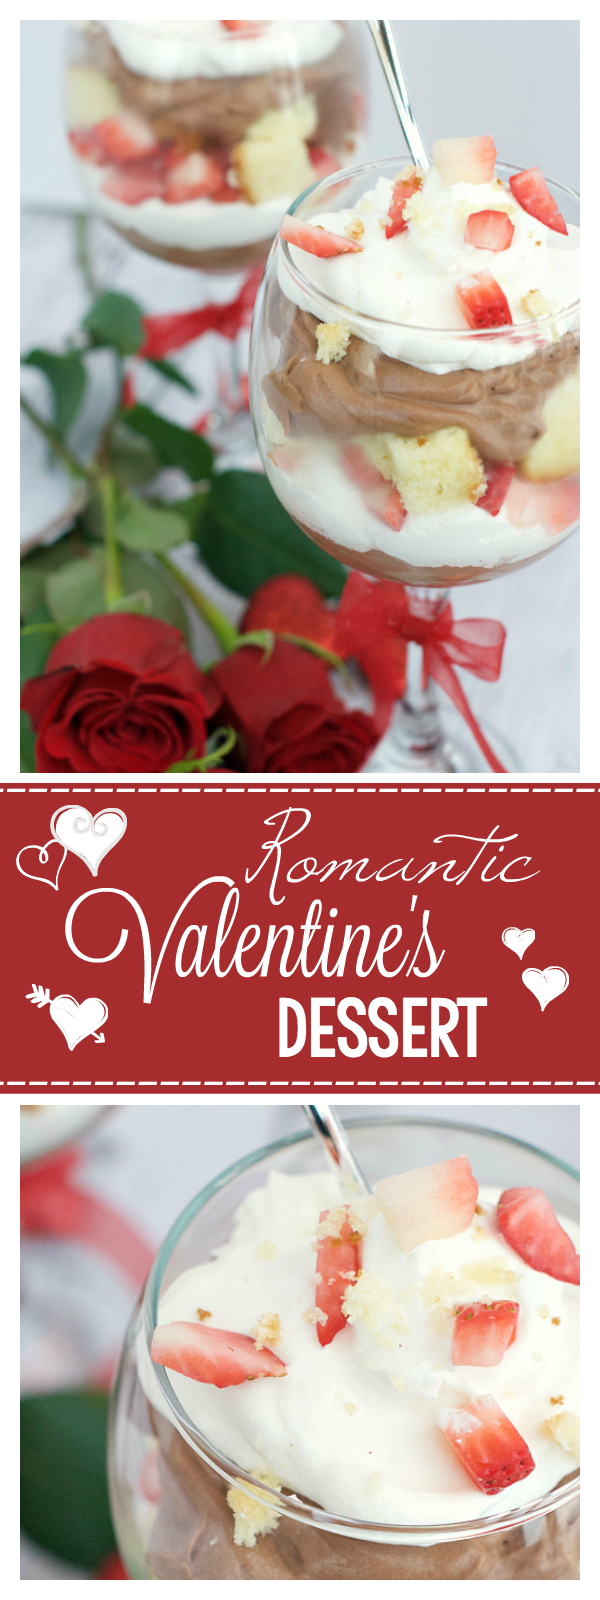 Romantic Valentine's Dessert for Two. This is a perfect dessert to share with your special someone this Valentine's Day. It's yummy and simple, leaving you plenty of time to enjoy your evening. #valentinesday #valentinesdaydessert #dessert #romanticdessert #parfaits